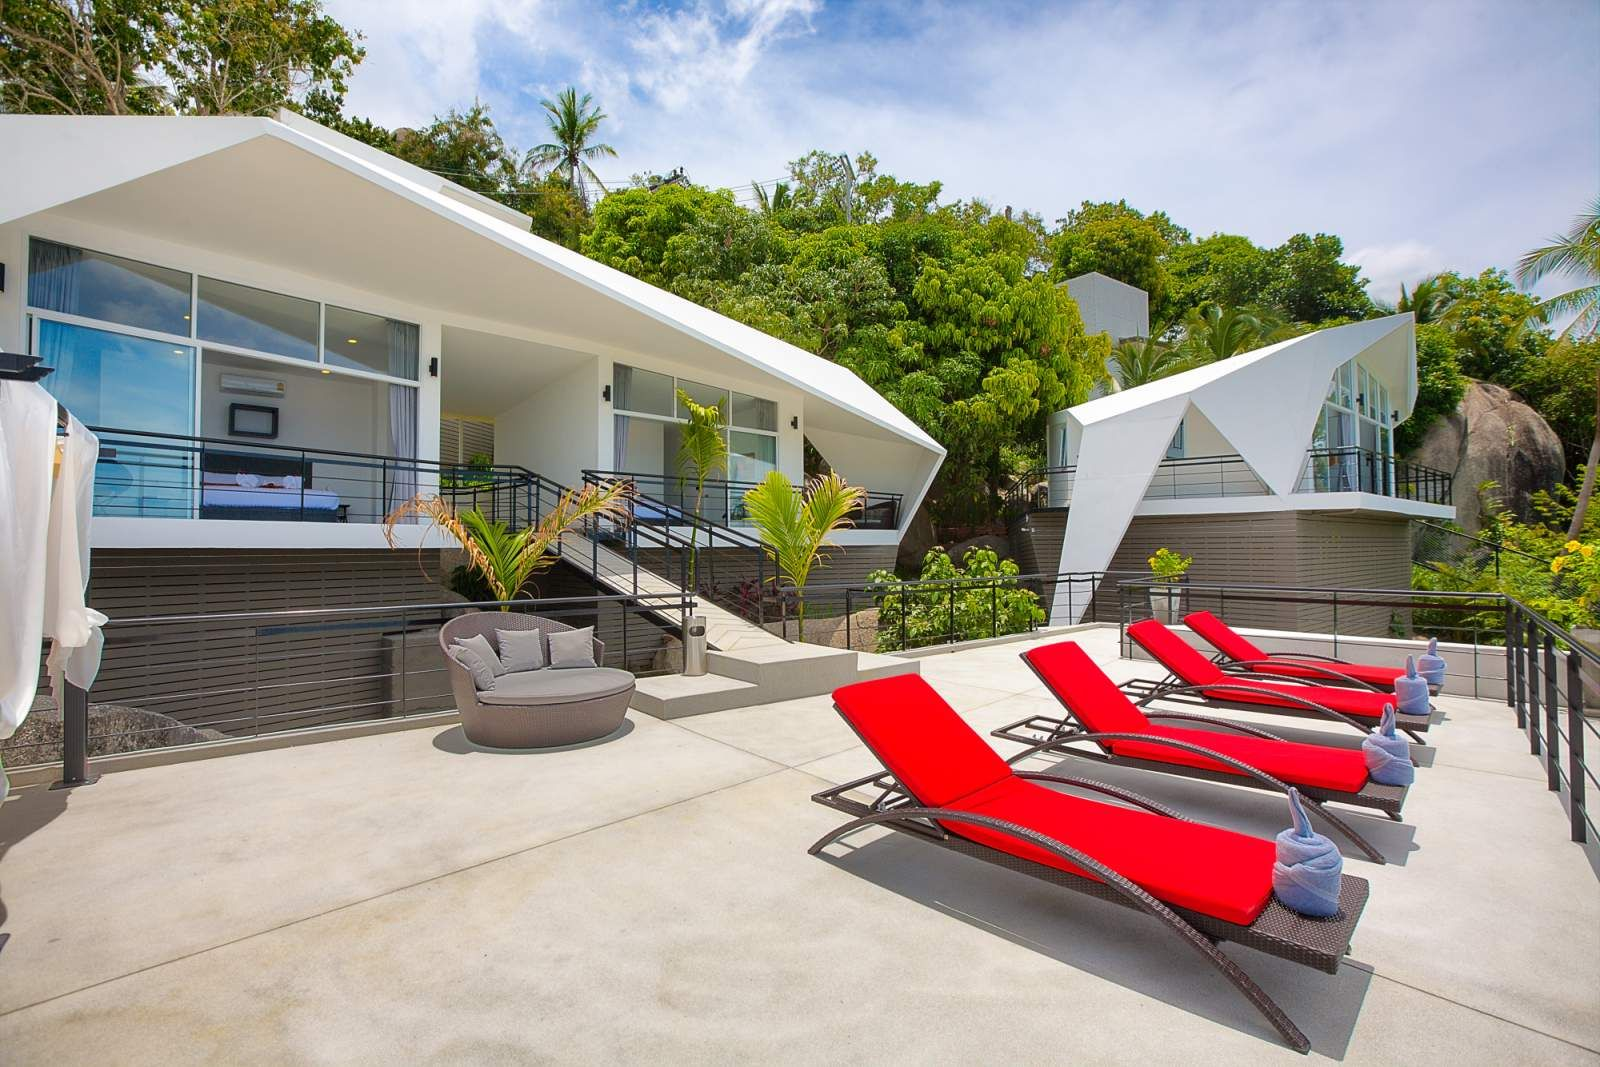 http://aasarchitecture.com/wp-content/uploads/Suan-Kachamudee-resort-by-SICART-and-SMITH-ARCHITECTS-08.jpg